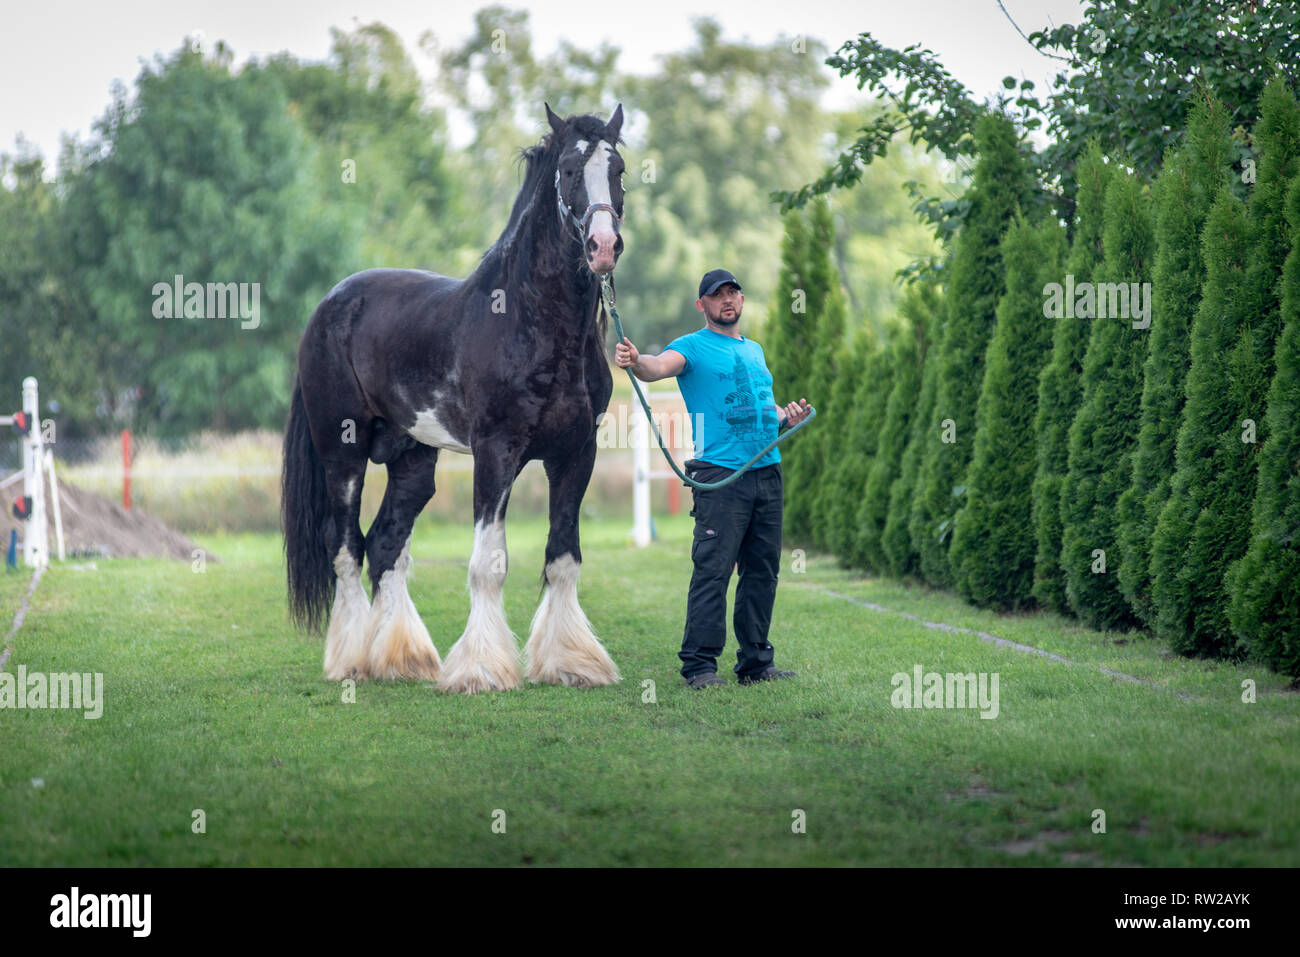 Man Stands On Grassy Area Holding Lead Of Large Black Draft Horse Kutno Lodz Voivodeship Poland Stock Photo Alamy